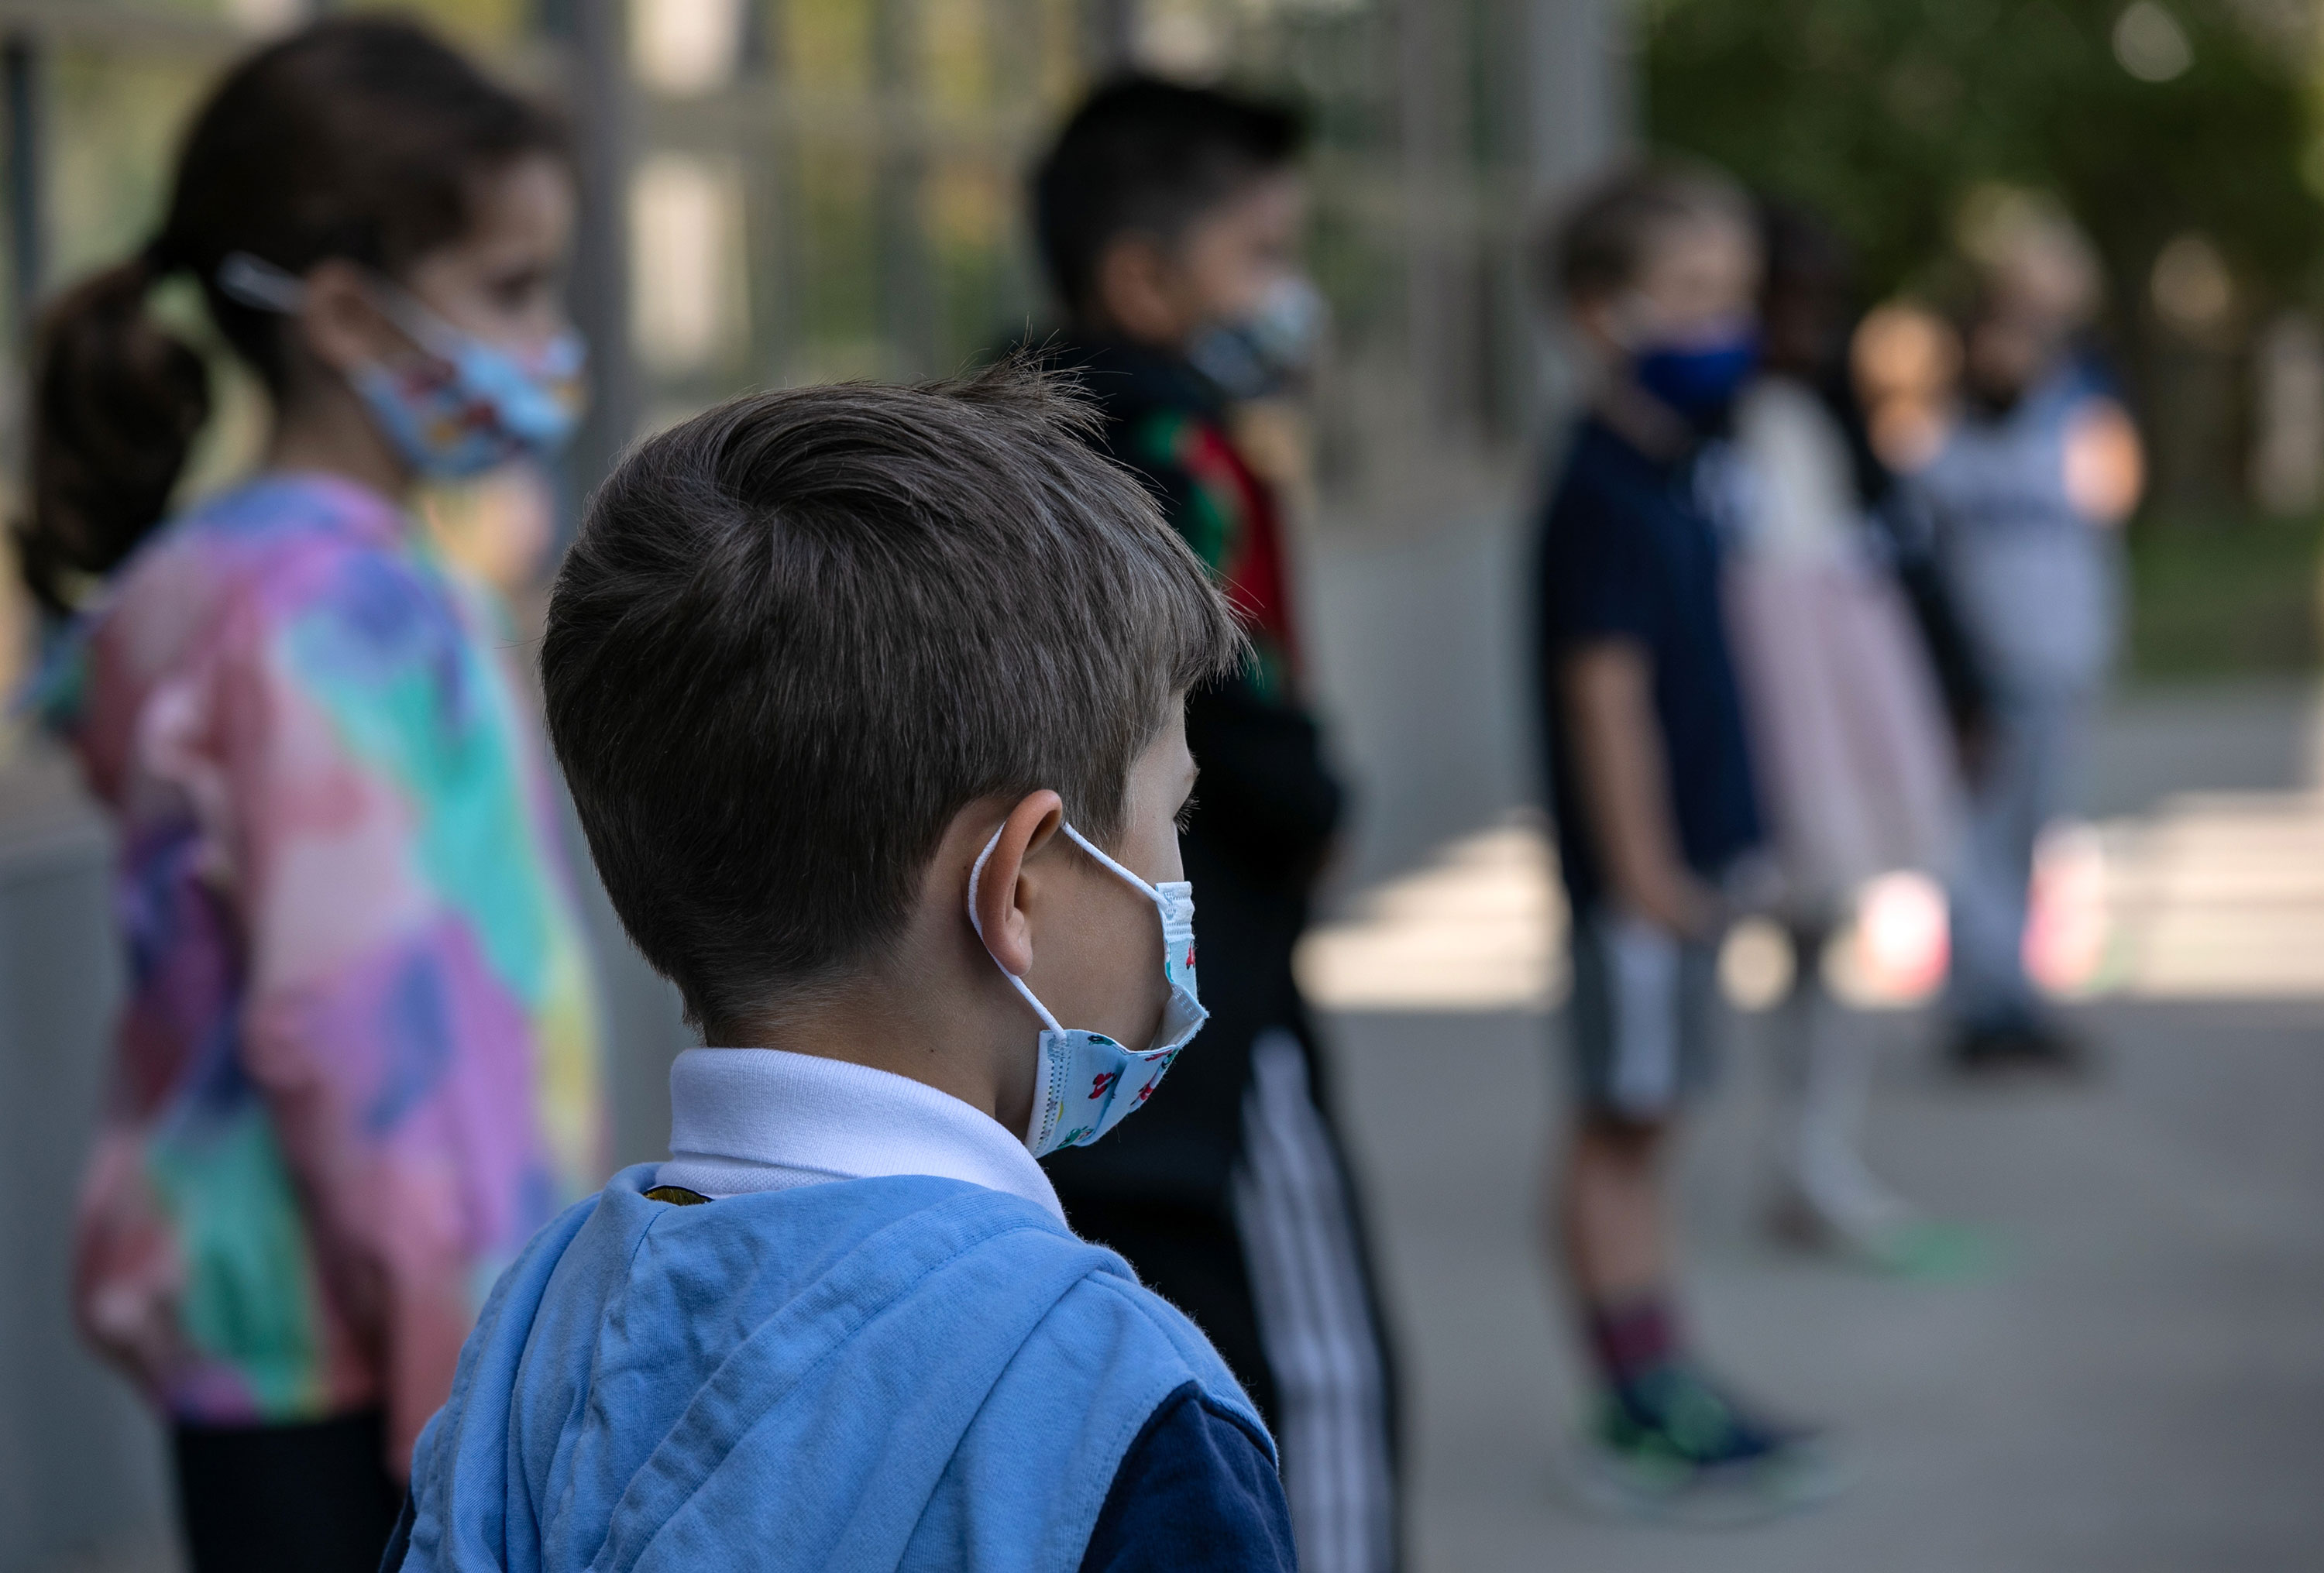 Masked school children are seen in Stamford, Connecticut, in September 2020.